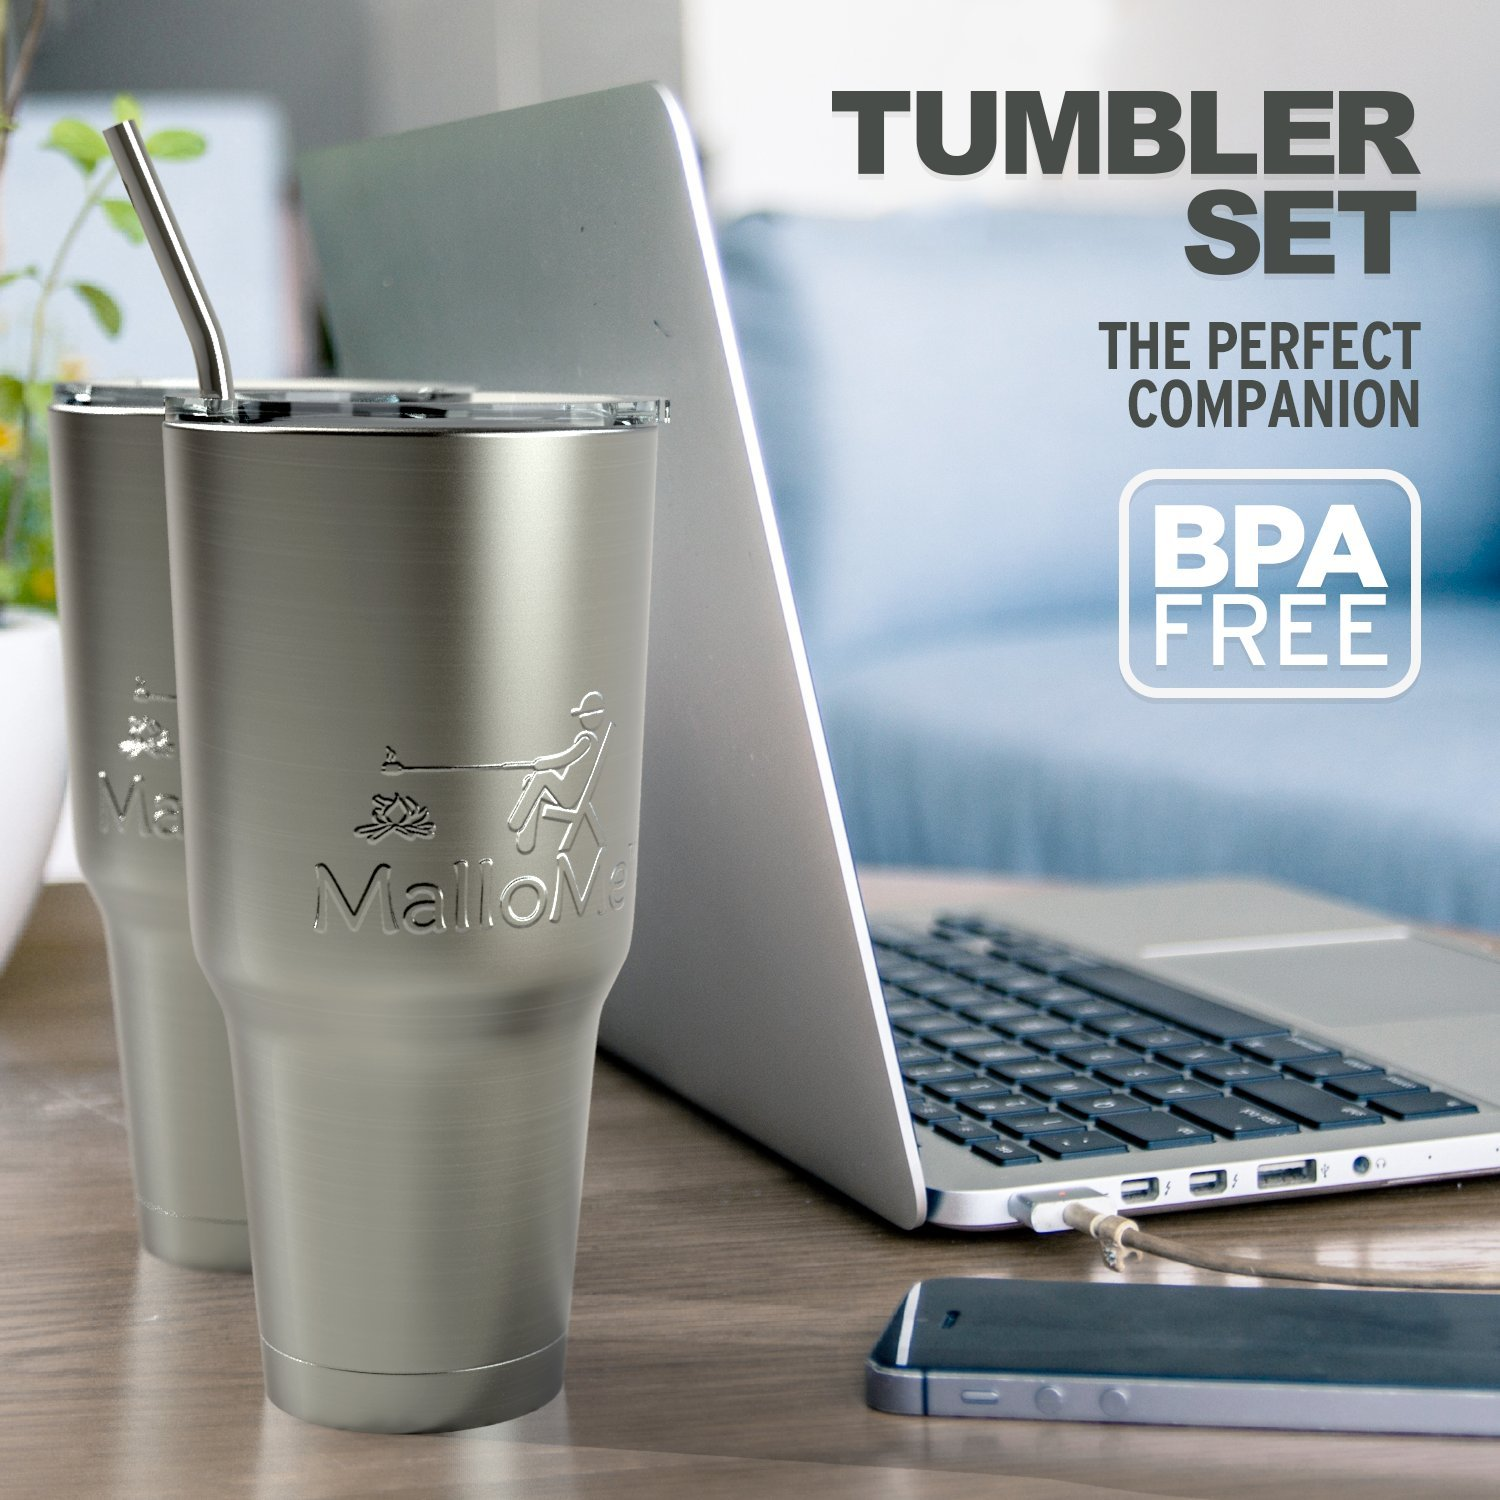 MalloMe Tumbler 30 oz. Double Wall Stainless Steel Vacuum Insulated - Travel Mug [Crystal Clear Lid] Water Coffee Cup [Straw Included] For Home,Office,School - Works Great for Ice Drink, Hot Beverage by MalloMe (Image #3)